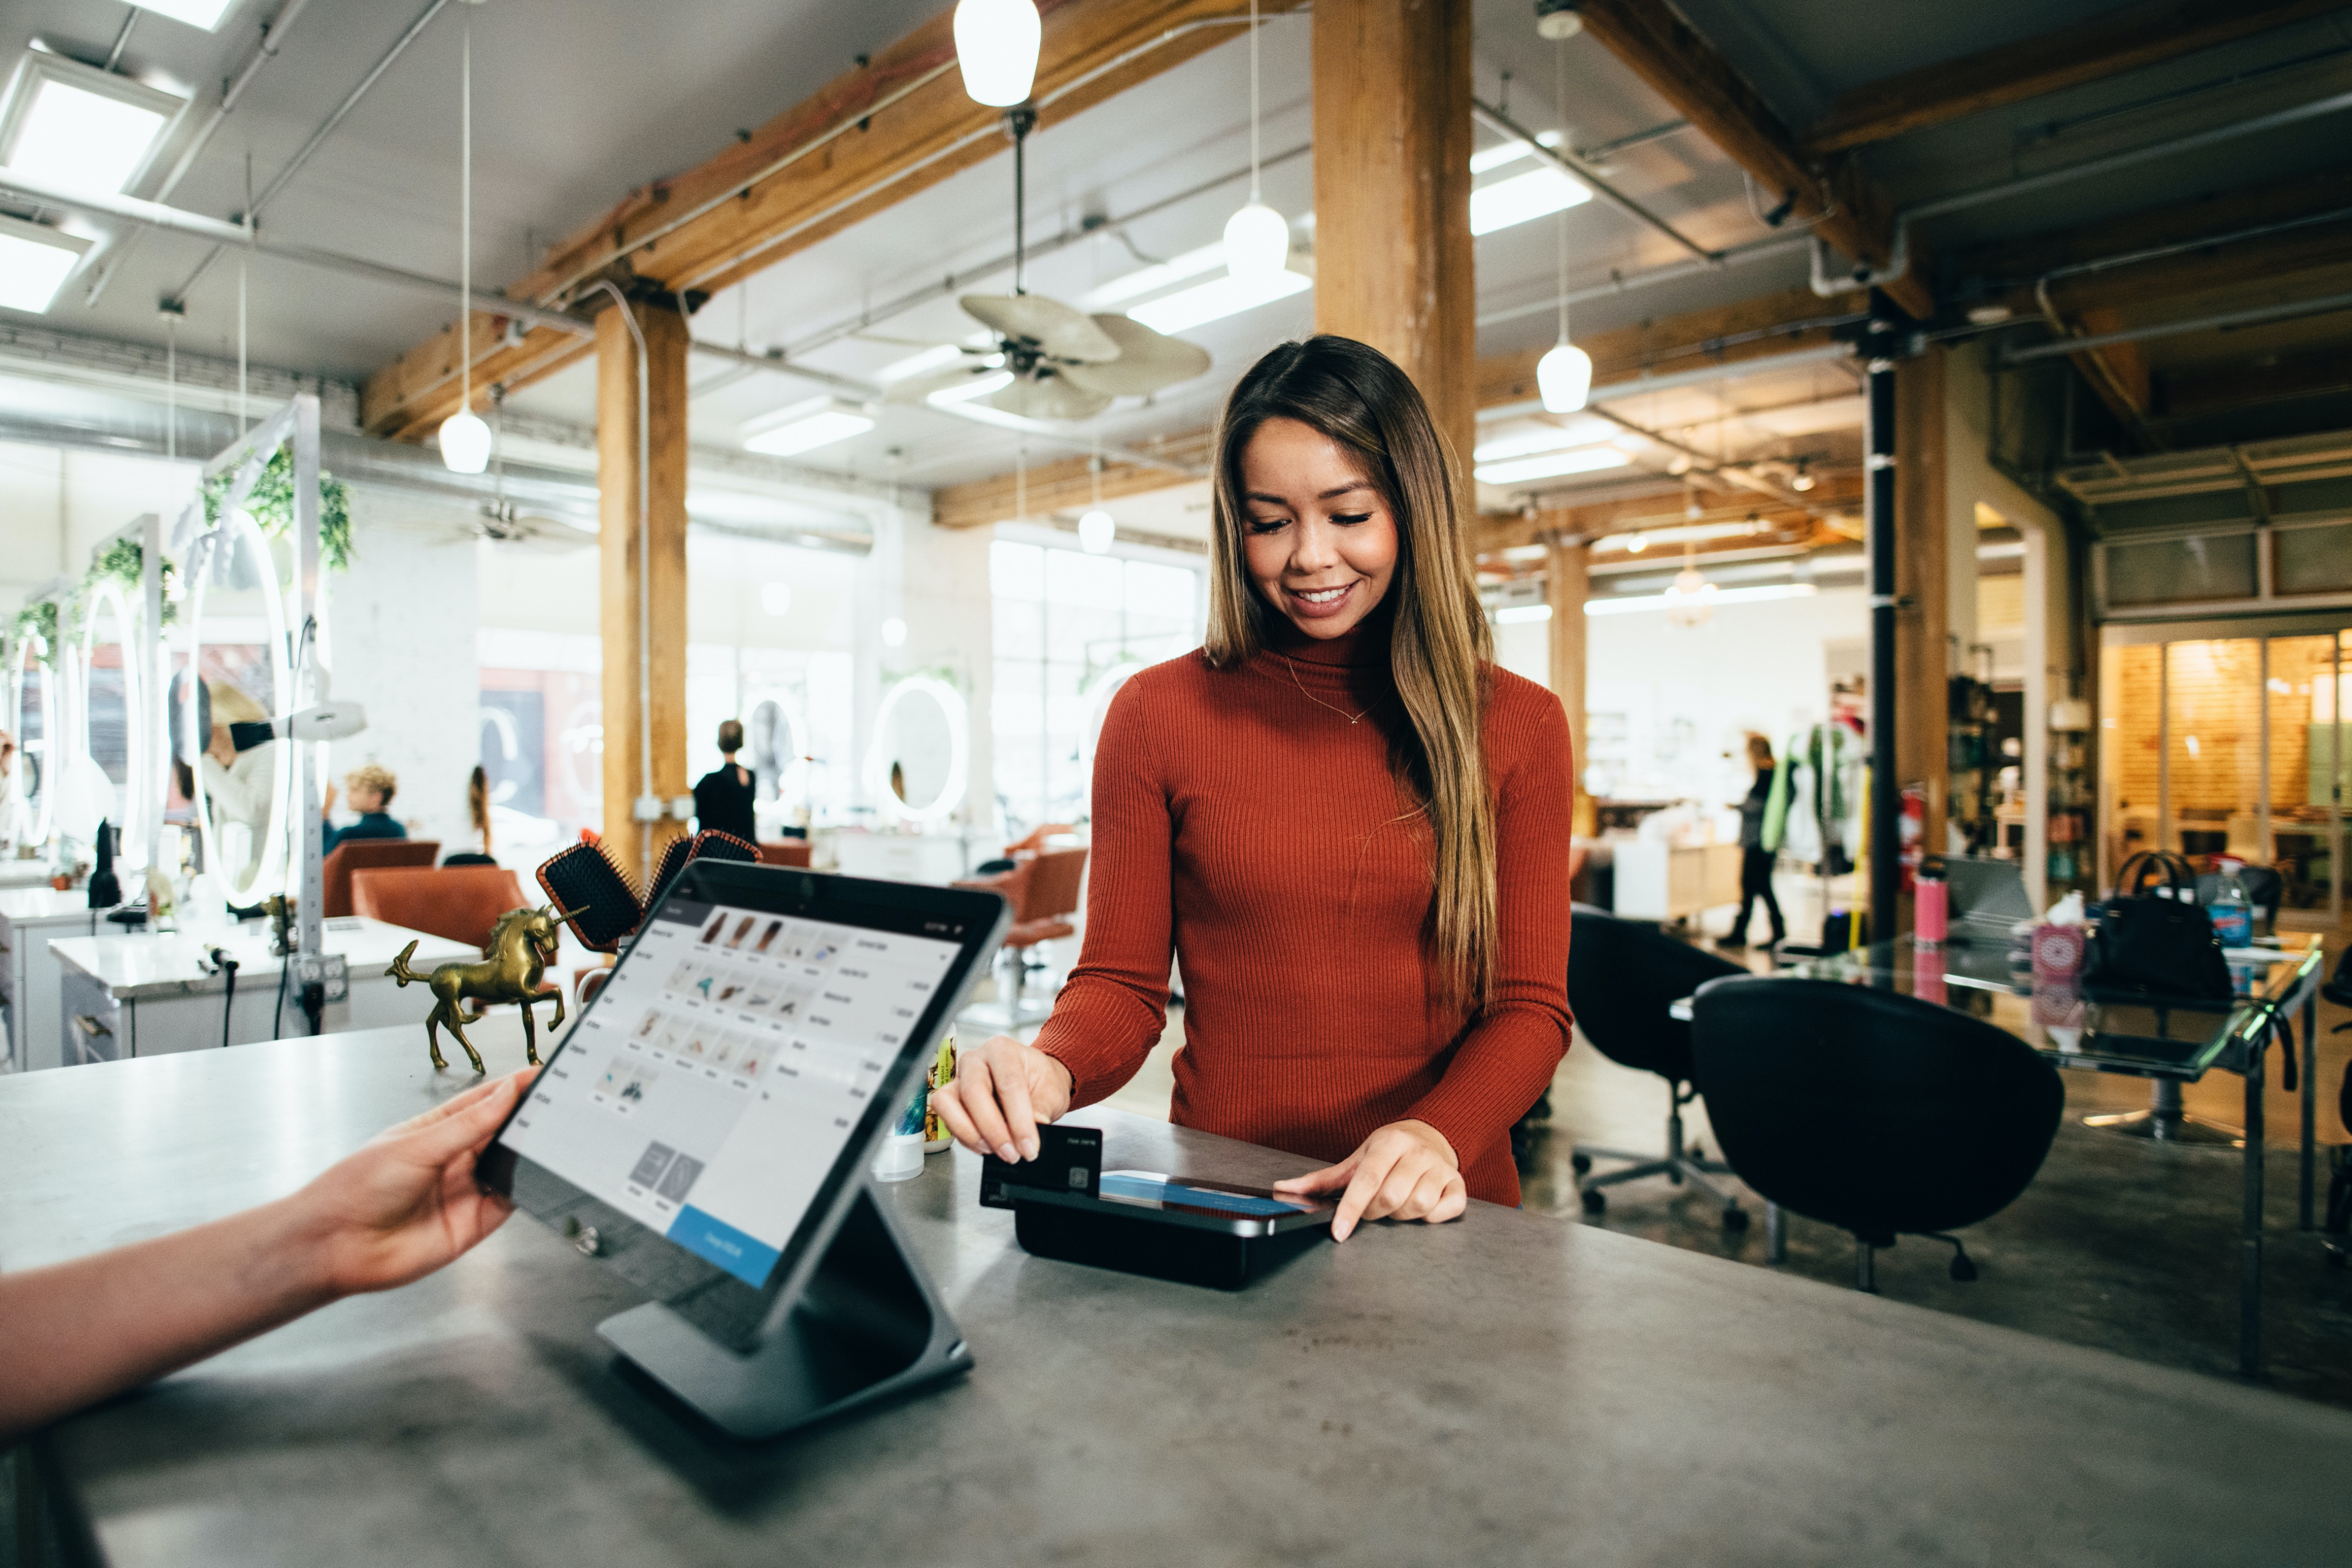 photo of women buying something using a modern point of sale device